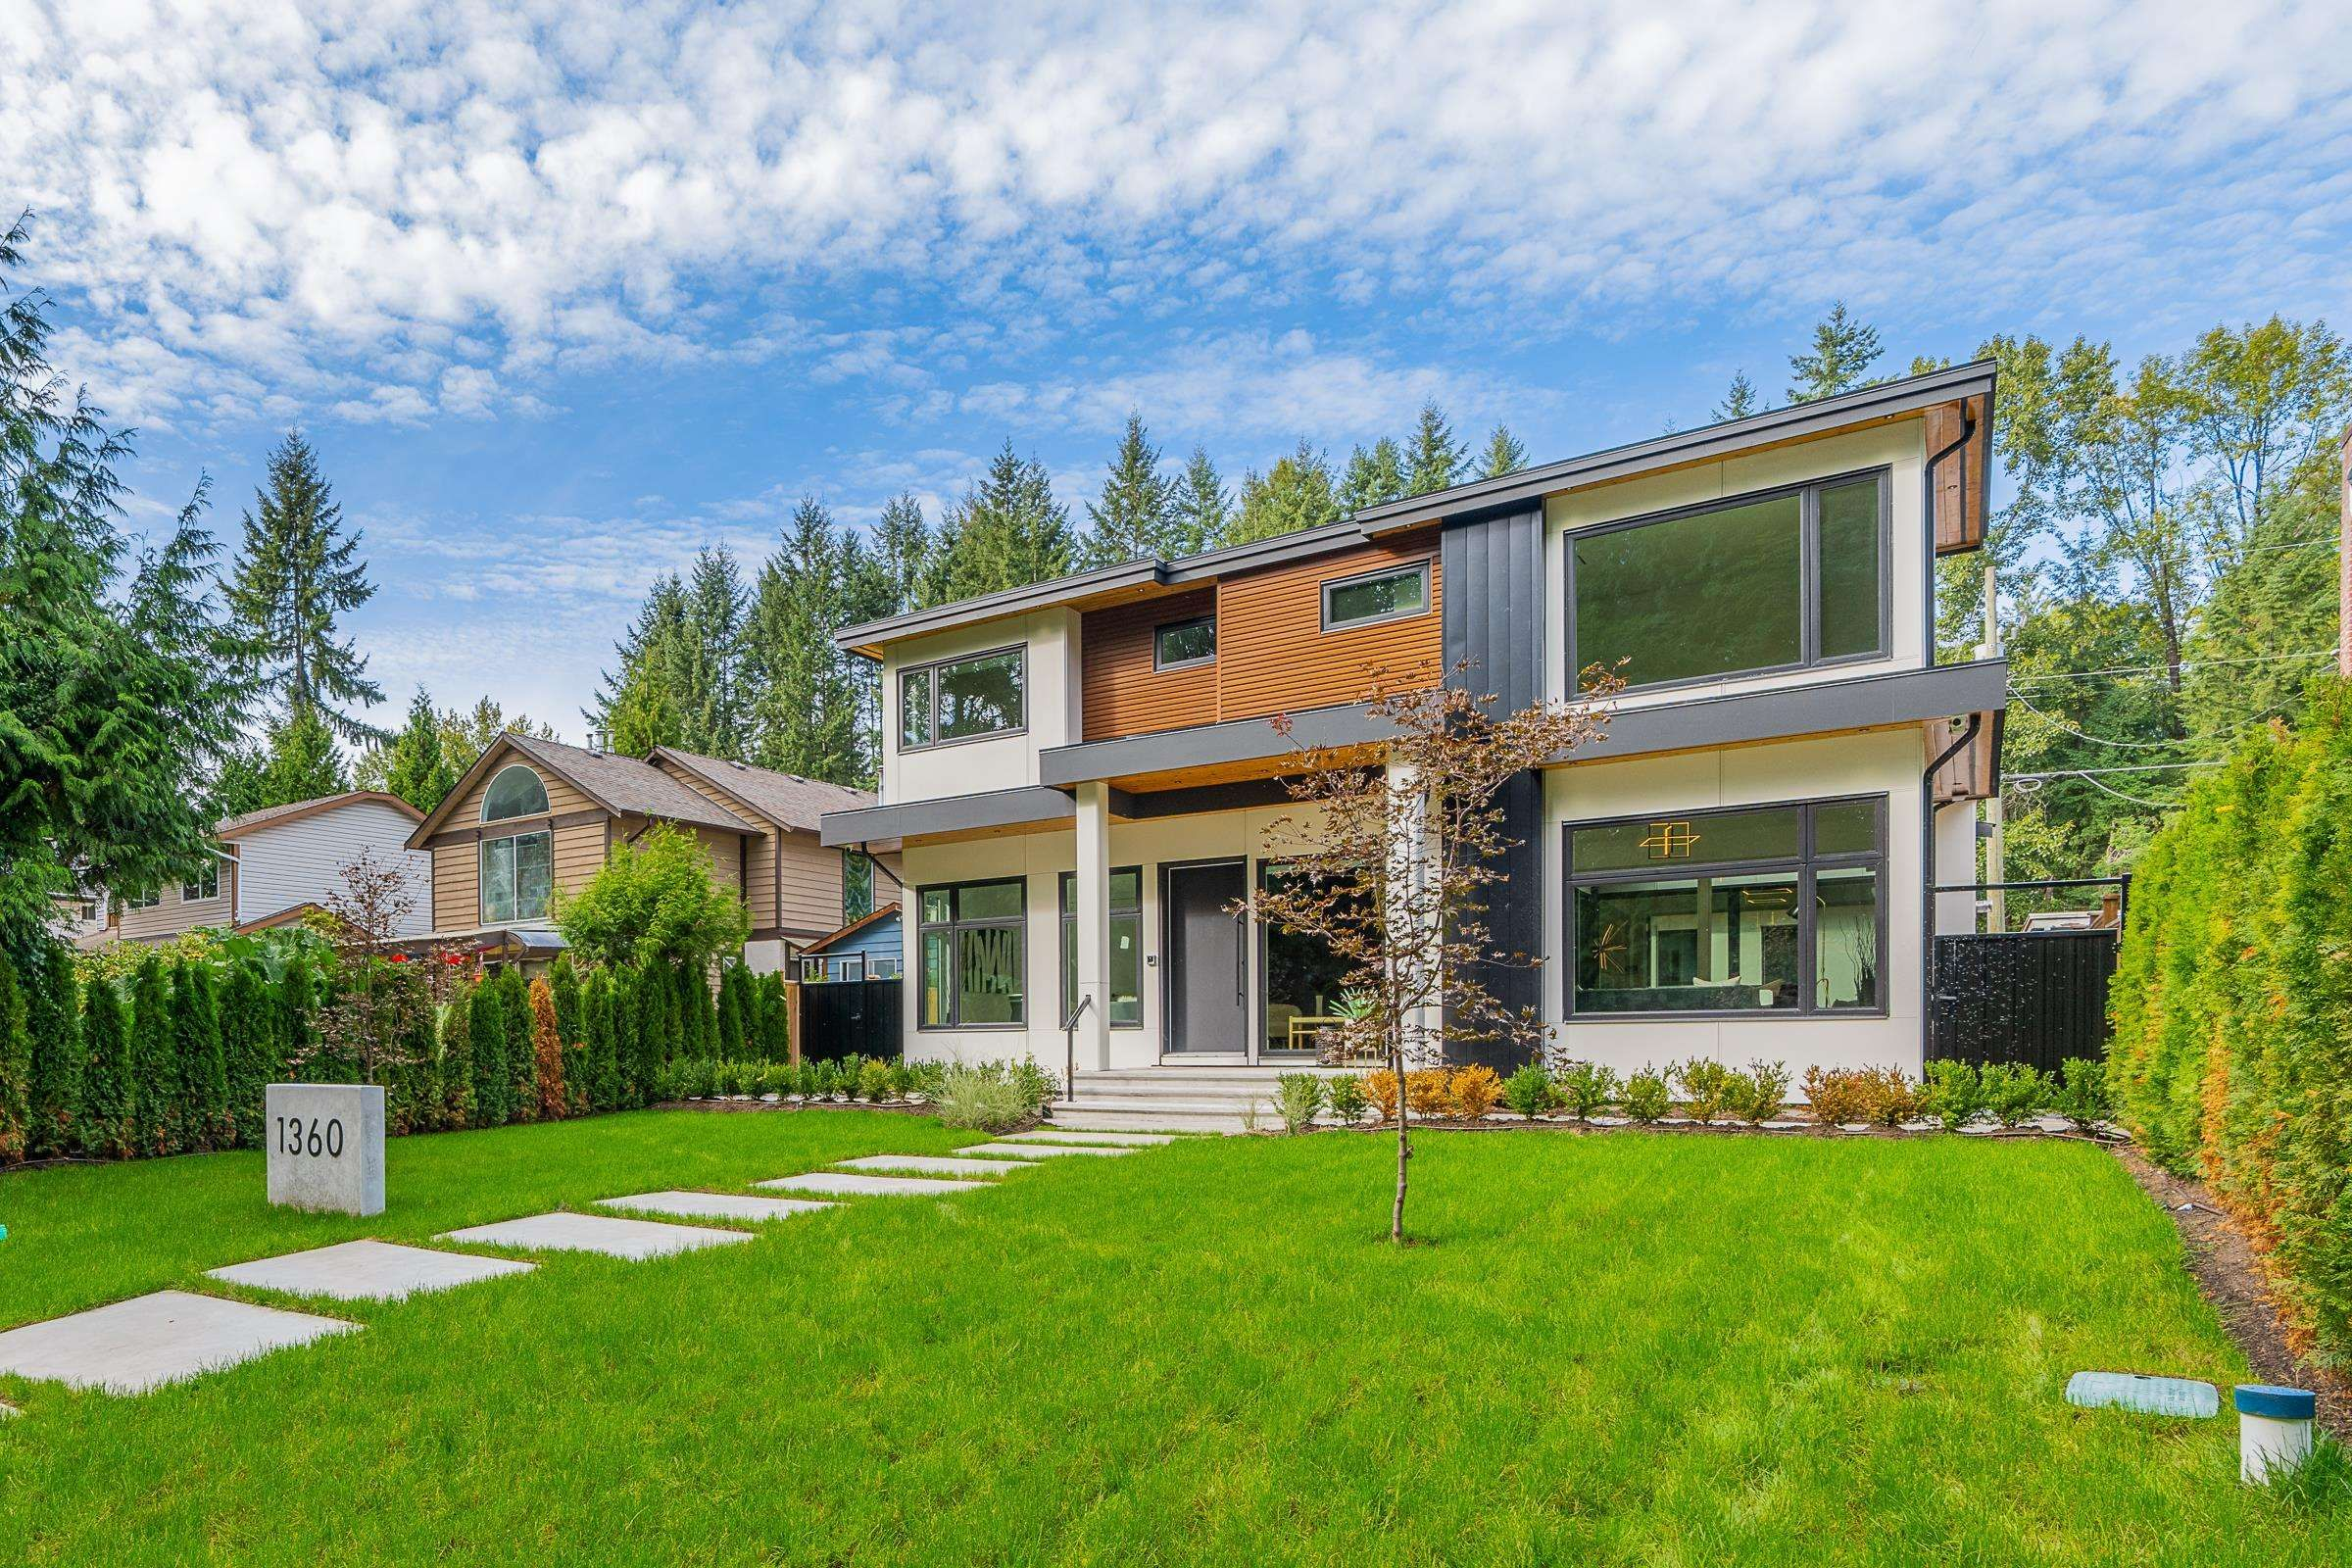 Main Photo: 1360 PLATEAU Drive in North Vancouver: Pemberton Heights House for sale : MLS®# R2619352